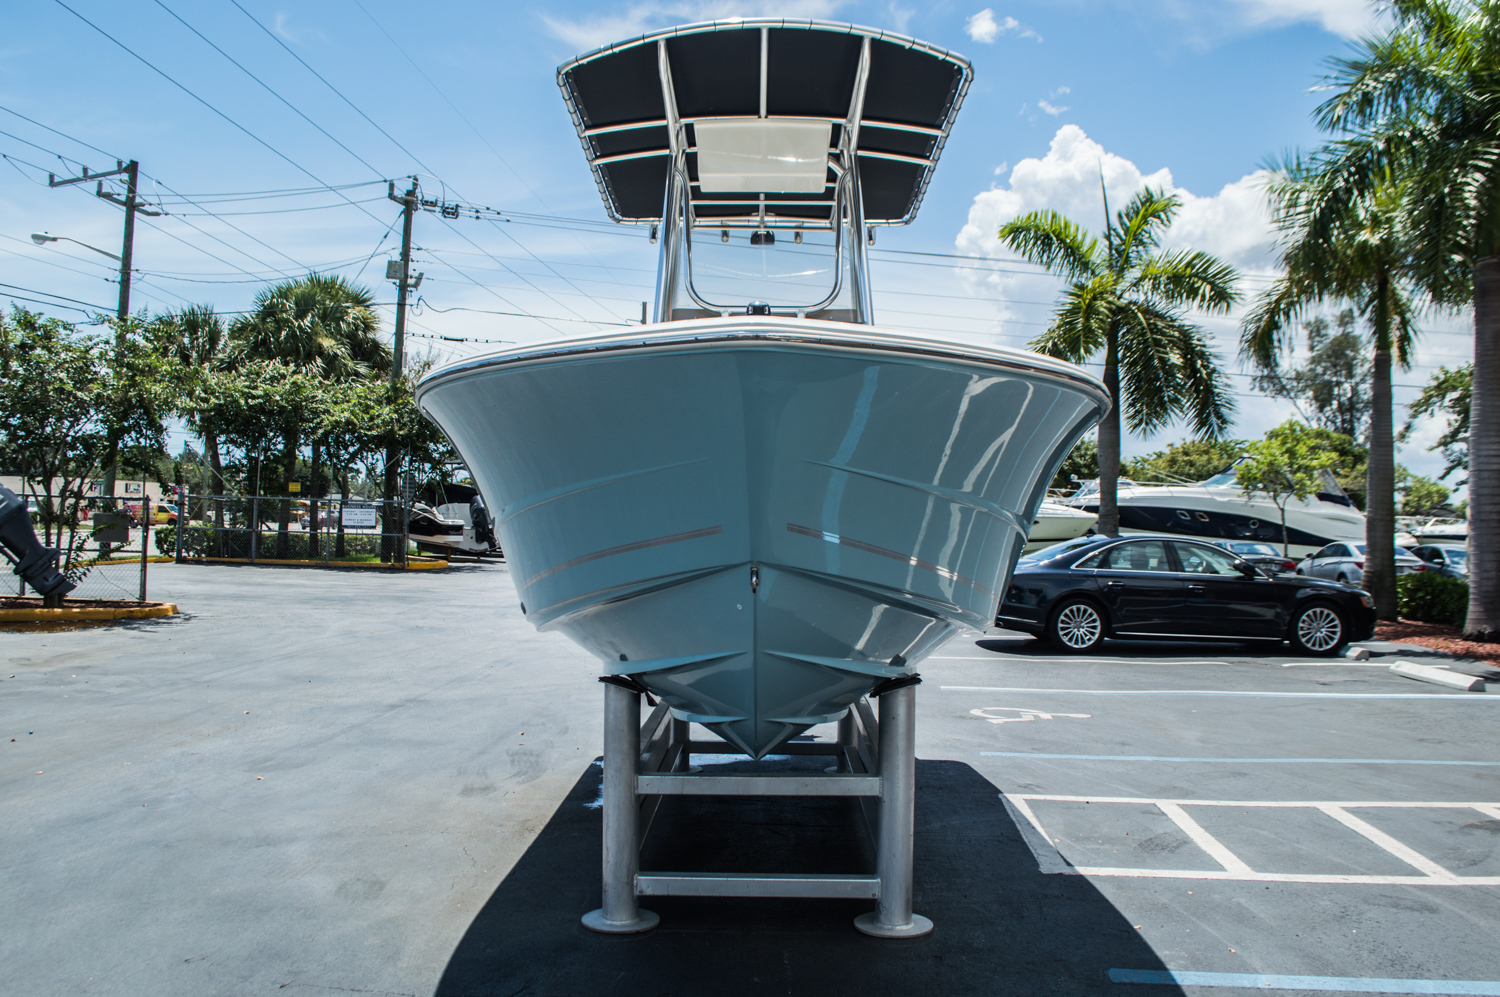 Thumbnail 2 for New 2016 Bulls Bay 200 CC Center Console boat for sale in West Palm Beach, FL